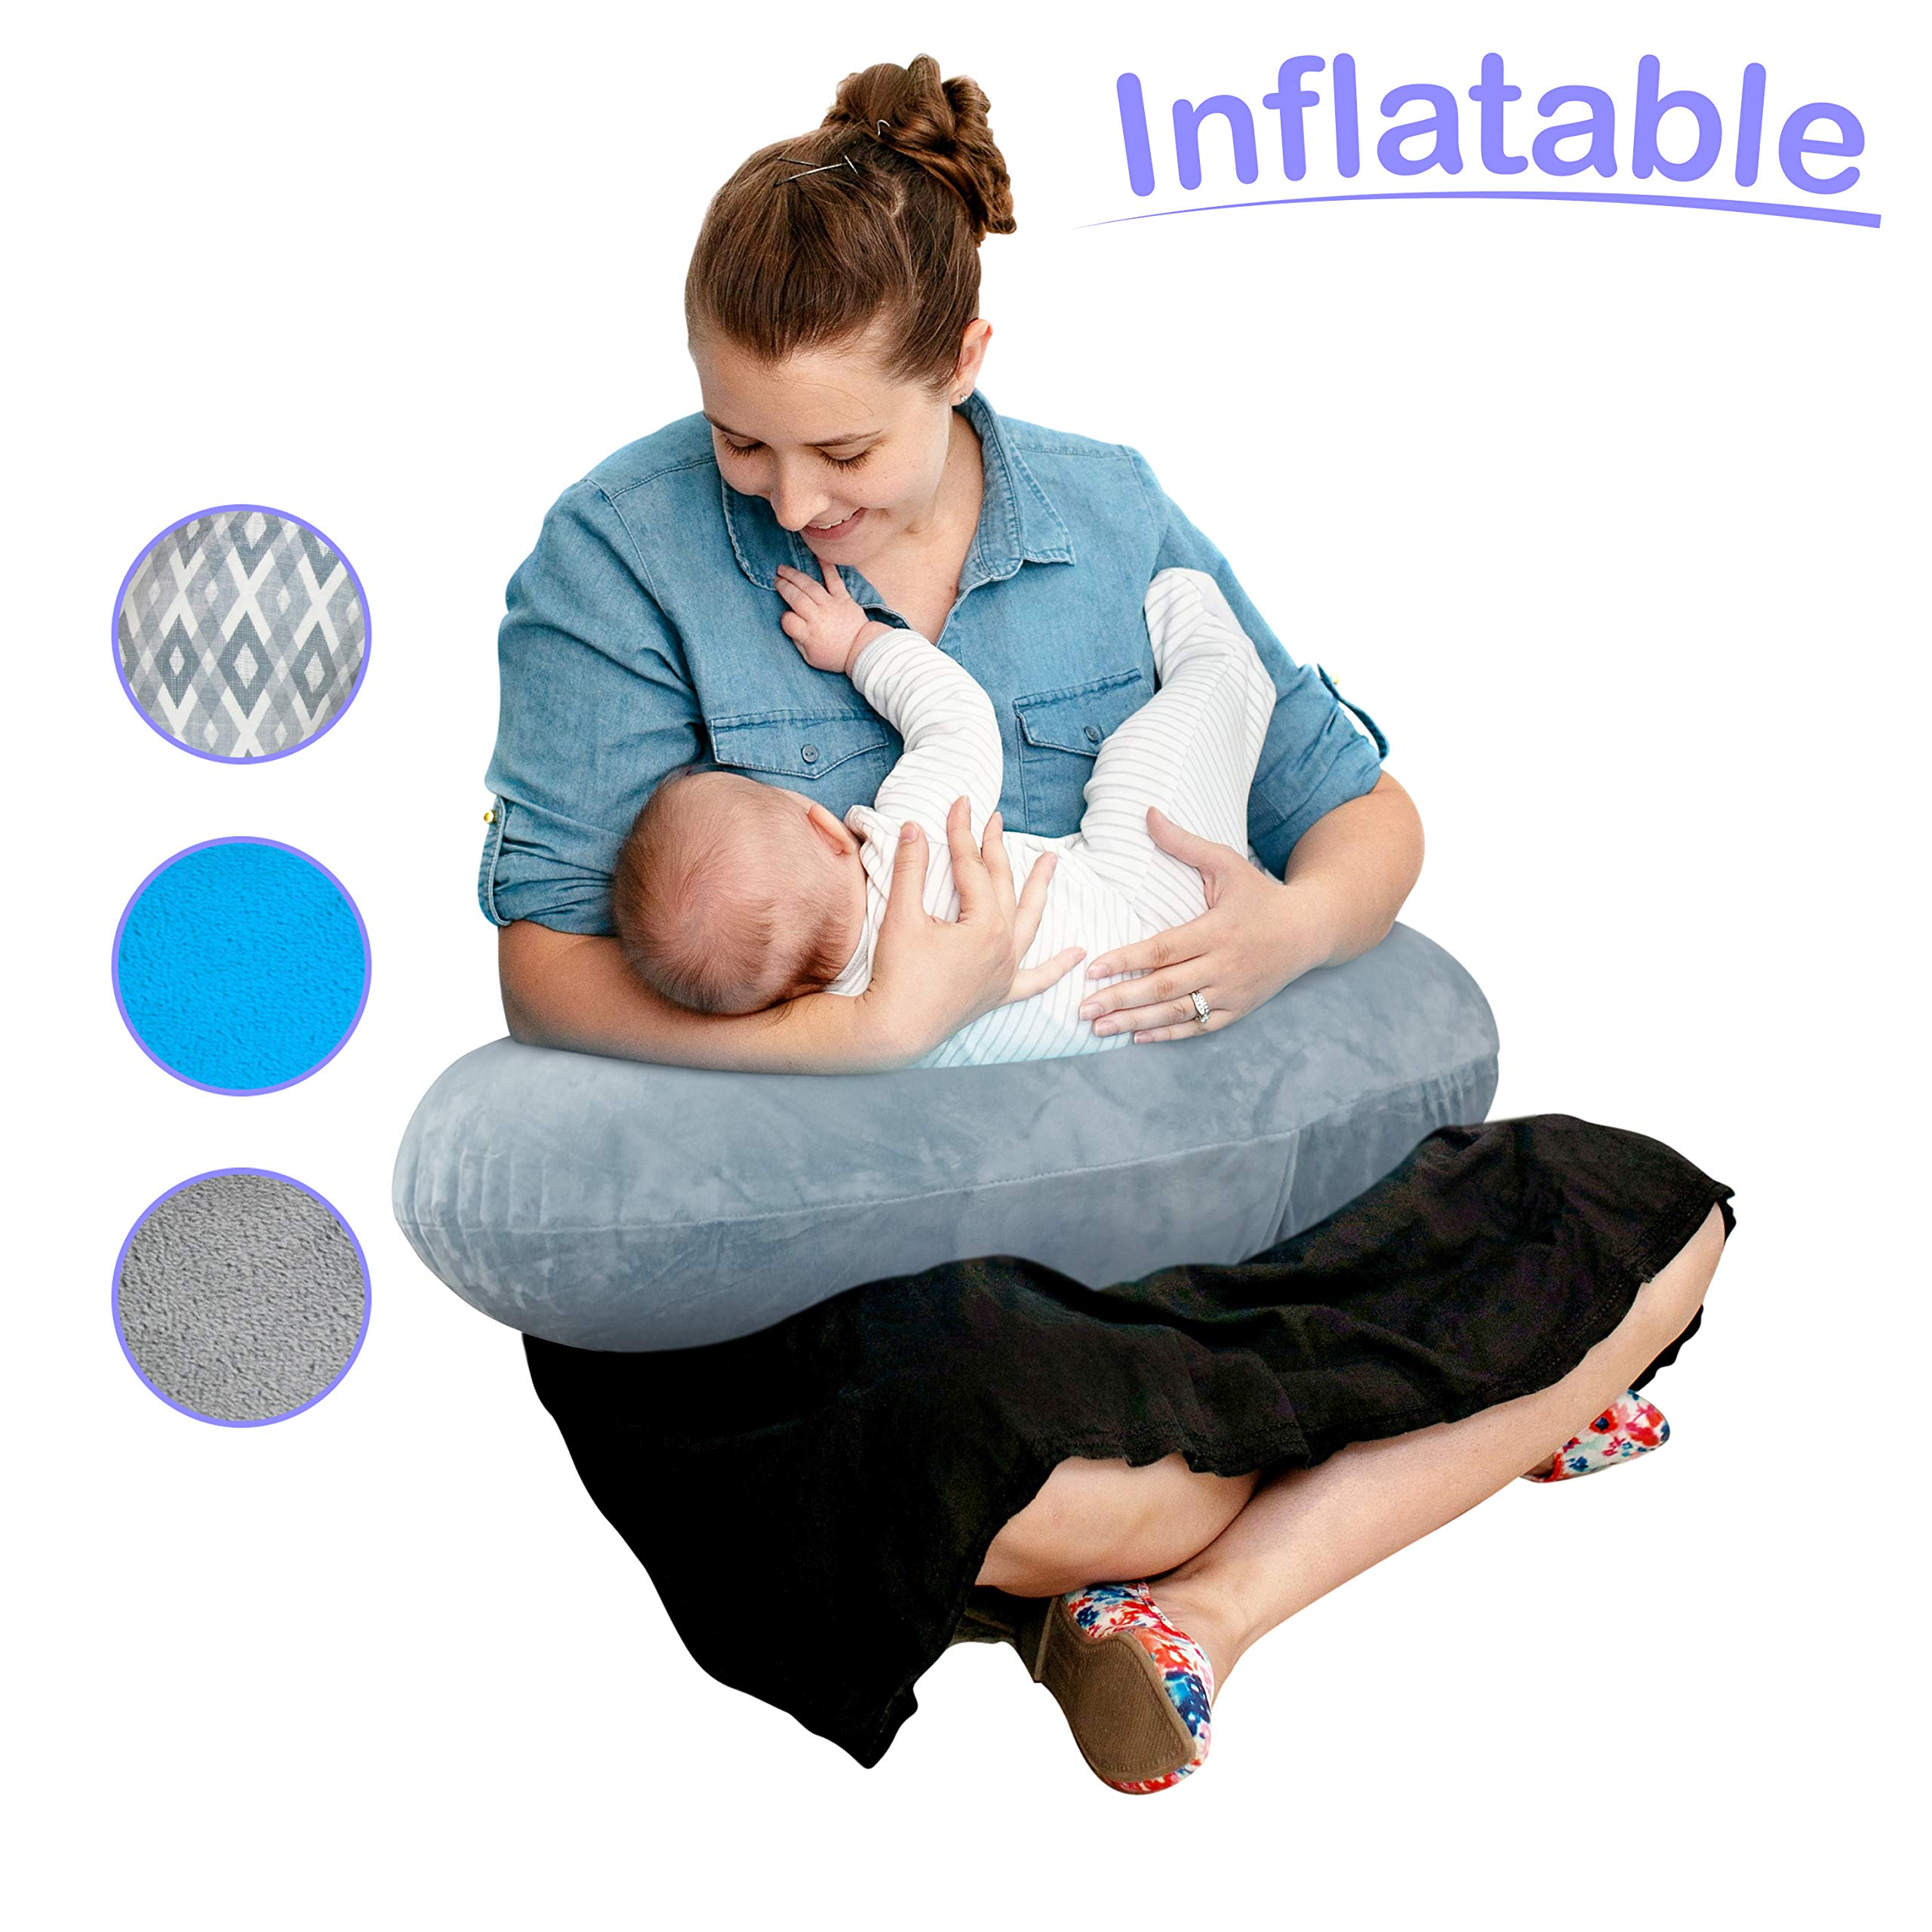 The Original Inflatable Nursing Pillow with Slipcover: Portable Breastfeeding Support Cushion with Removable Plush Minky Cover - Compact Breast Feeding Pillow for Traveling - No More Sore Muscles! by Royexe